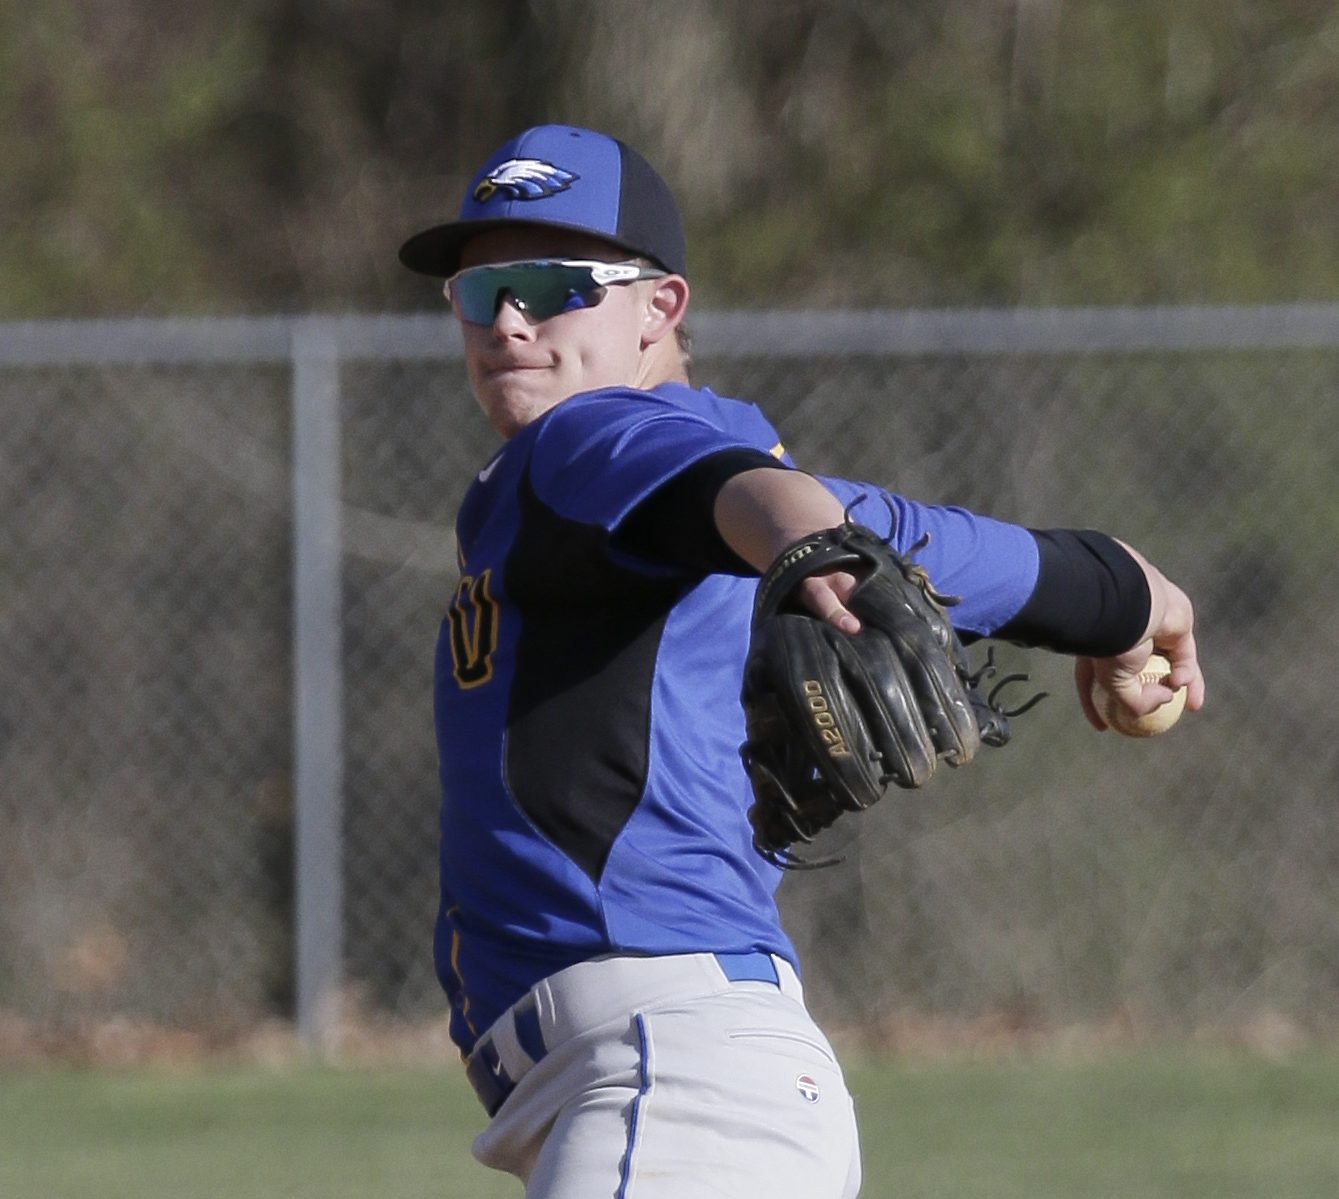 """Max Dineen has played infield, outfield and pitched for Pennsville. """"If I asked him to catch, I´d have the best catcher in South Jersey,"""" Coach Matt Karr said."""